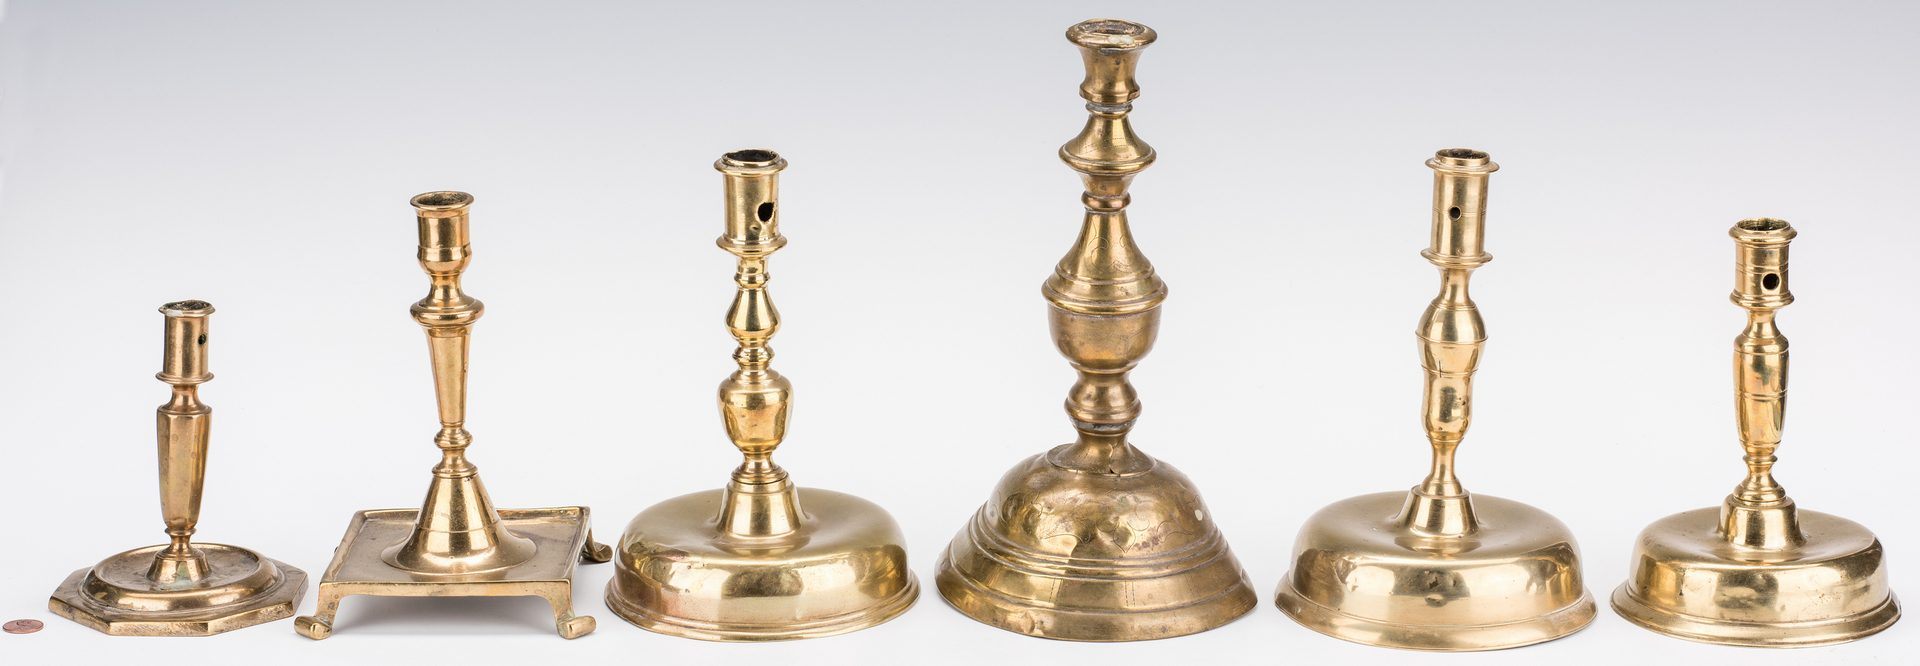 Lot 345: 6 Early Brass Candlesticks